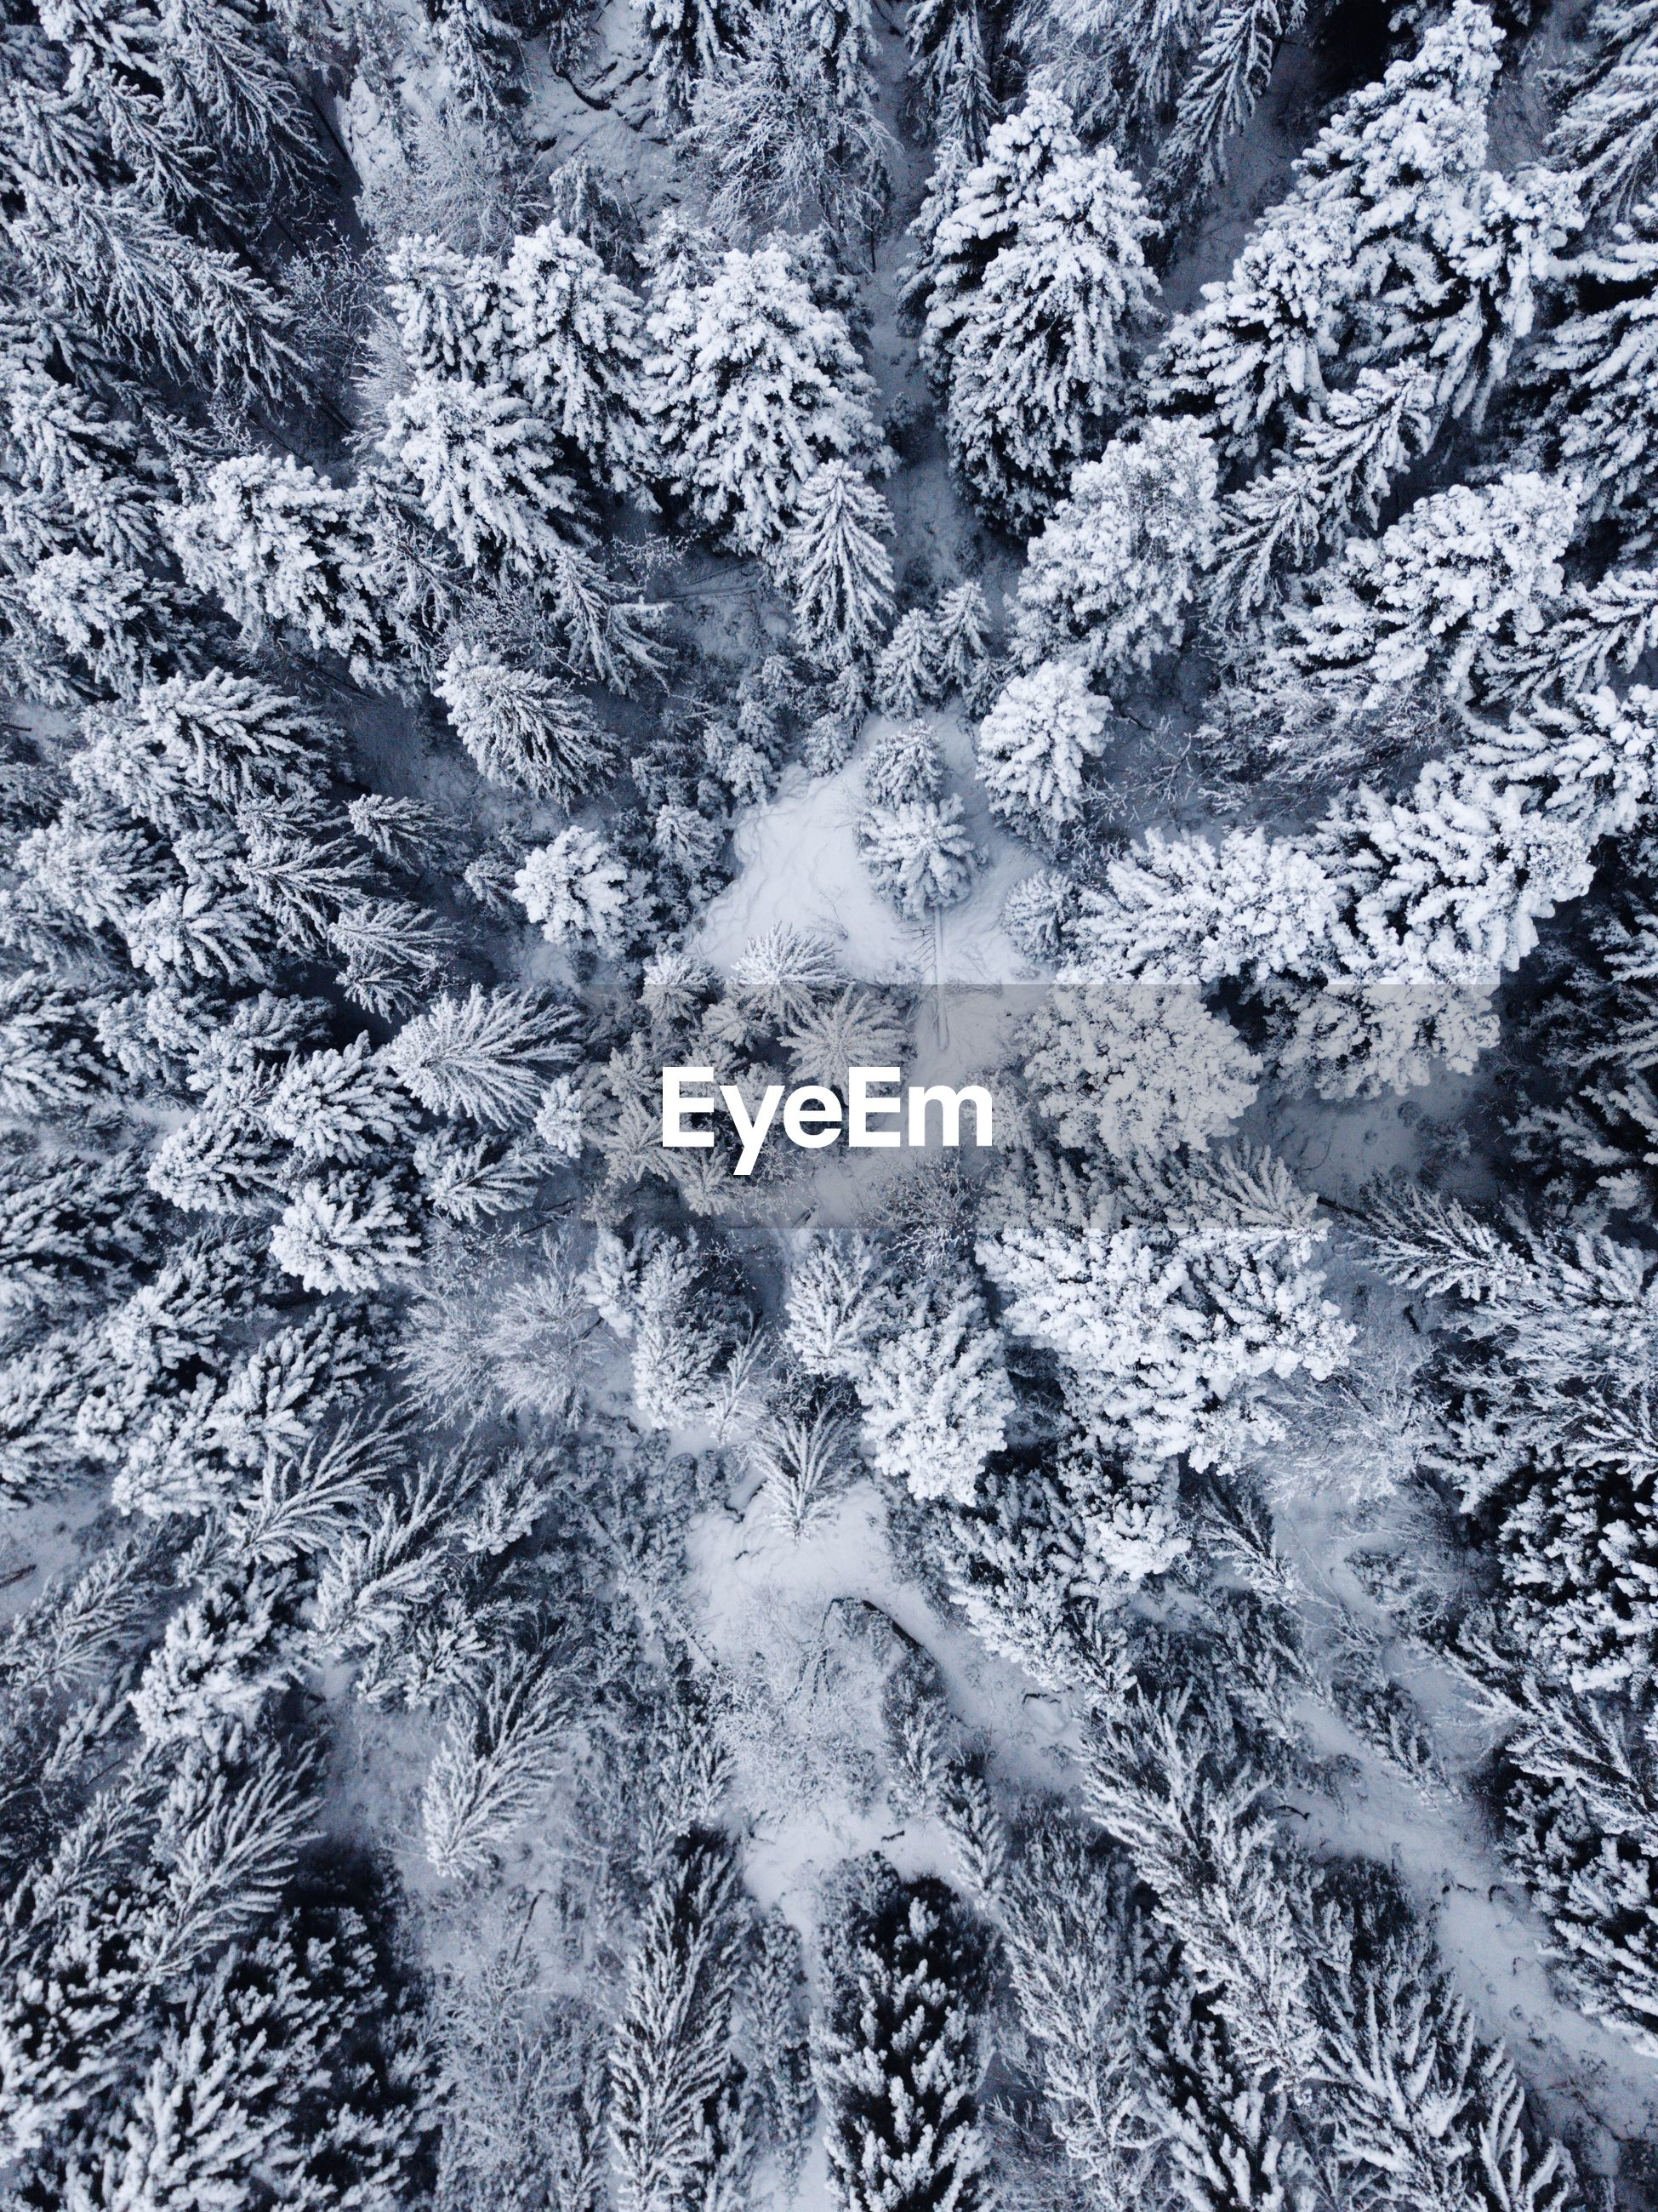 Full frame shot of snow covered trees in forest during winter